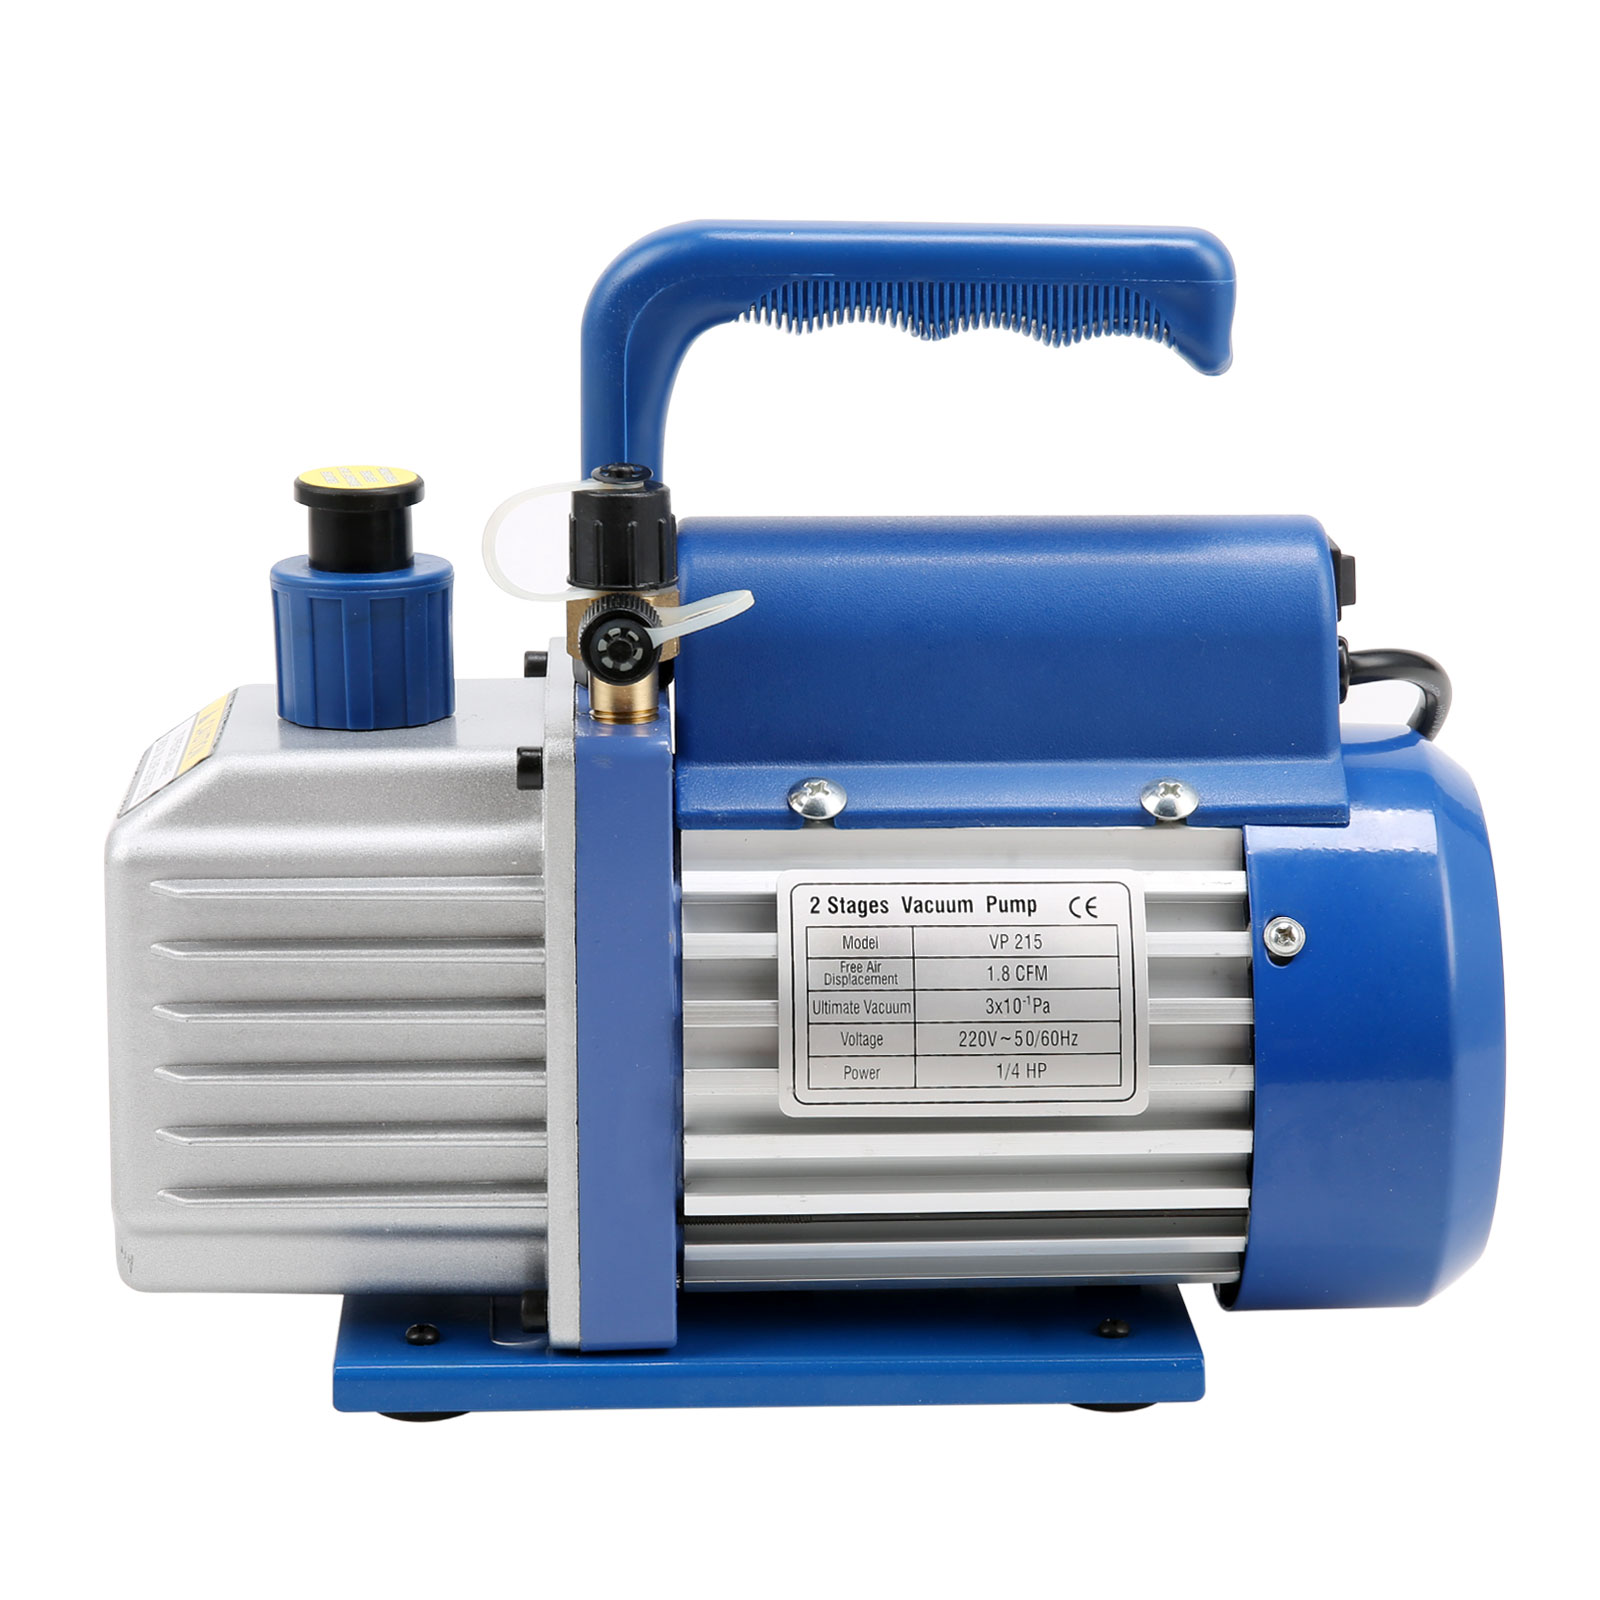 #1150AF 1.8CFM 1/4HP Vacuum Pump Two Stages Air Conditioning  Best 9223 Air Conditioning Melbourne Ebay photos with 1600x1600 px on helpvideos.info - Air Conditioners, Air Coolers and more